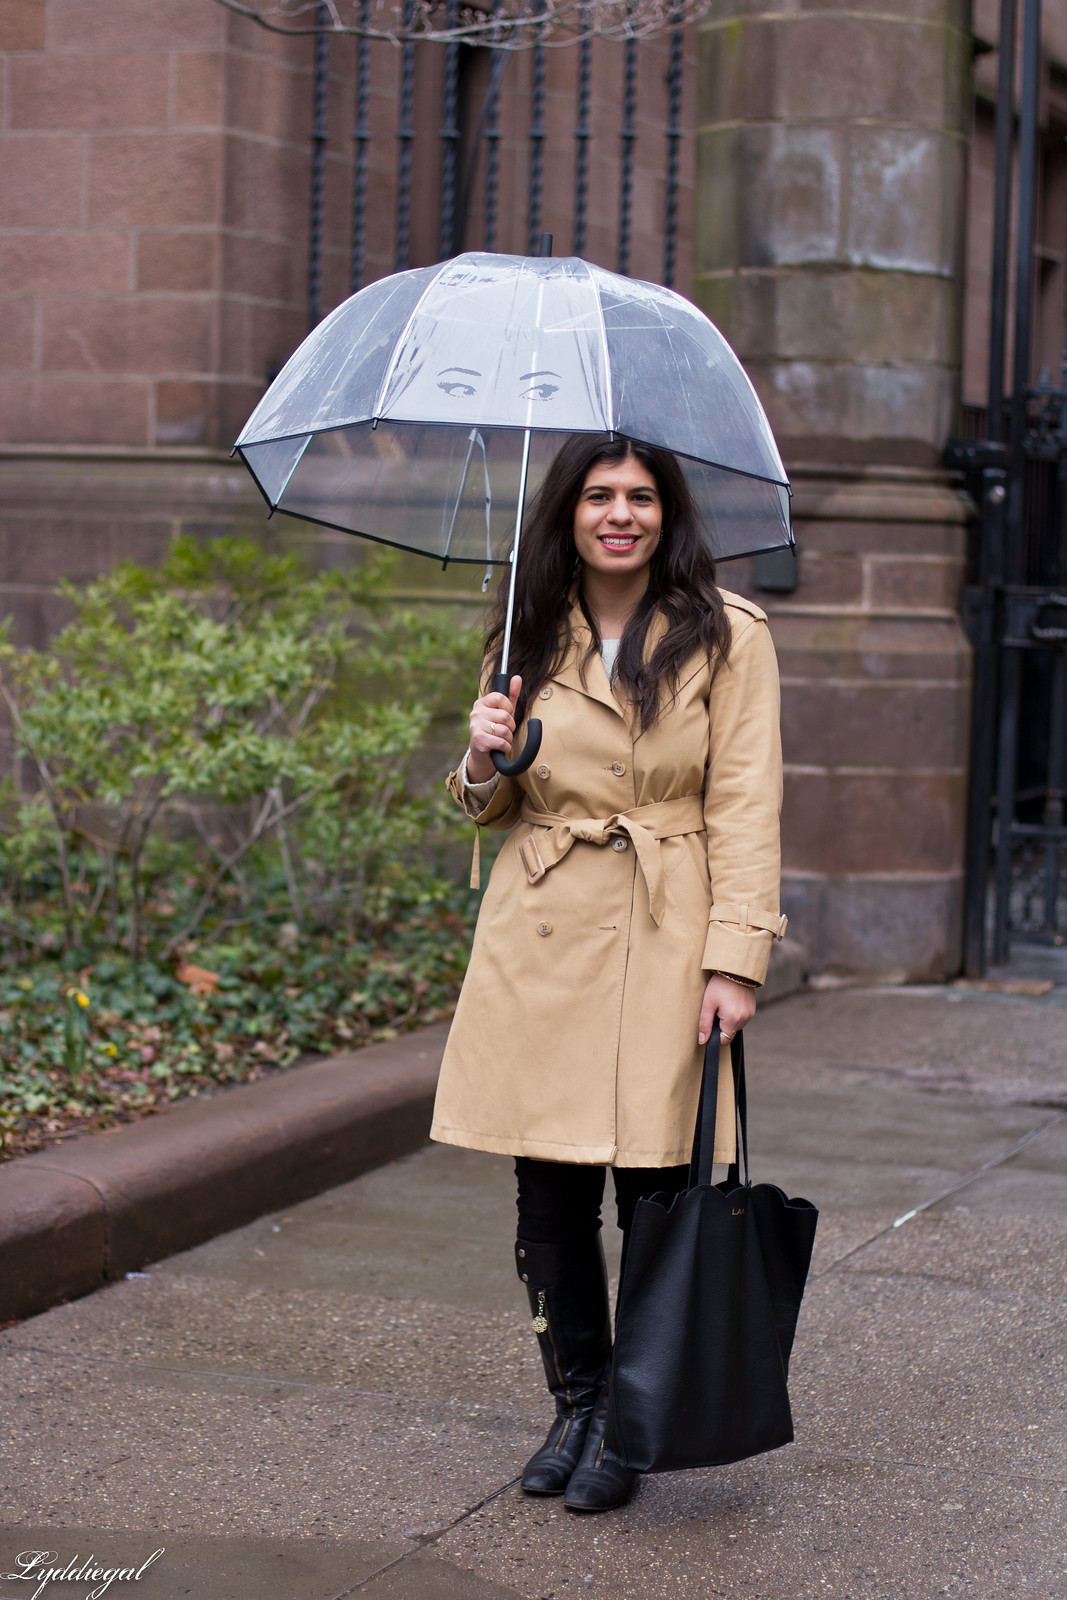 Trench coat, matine tilly clutch, kate spade umbrella, rainy day outfit.jpg